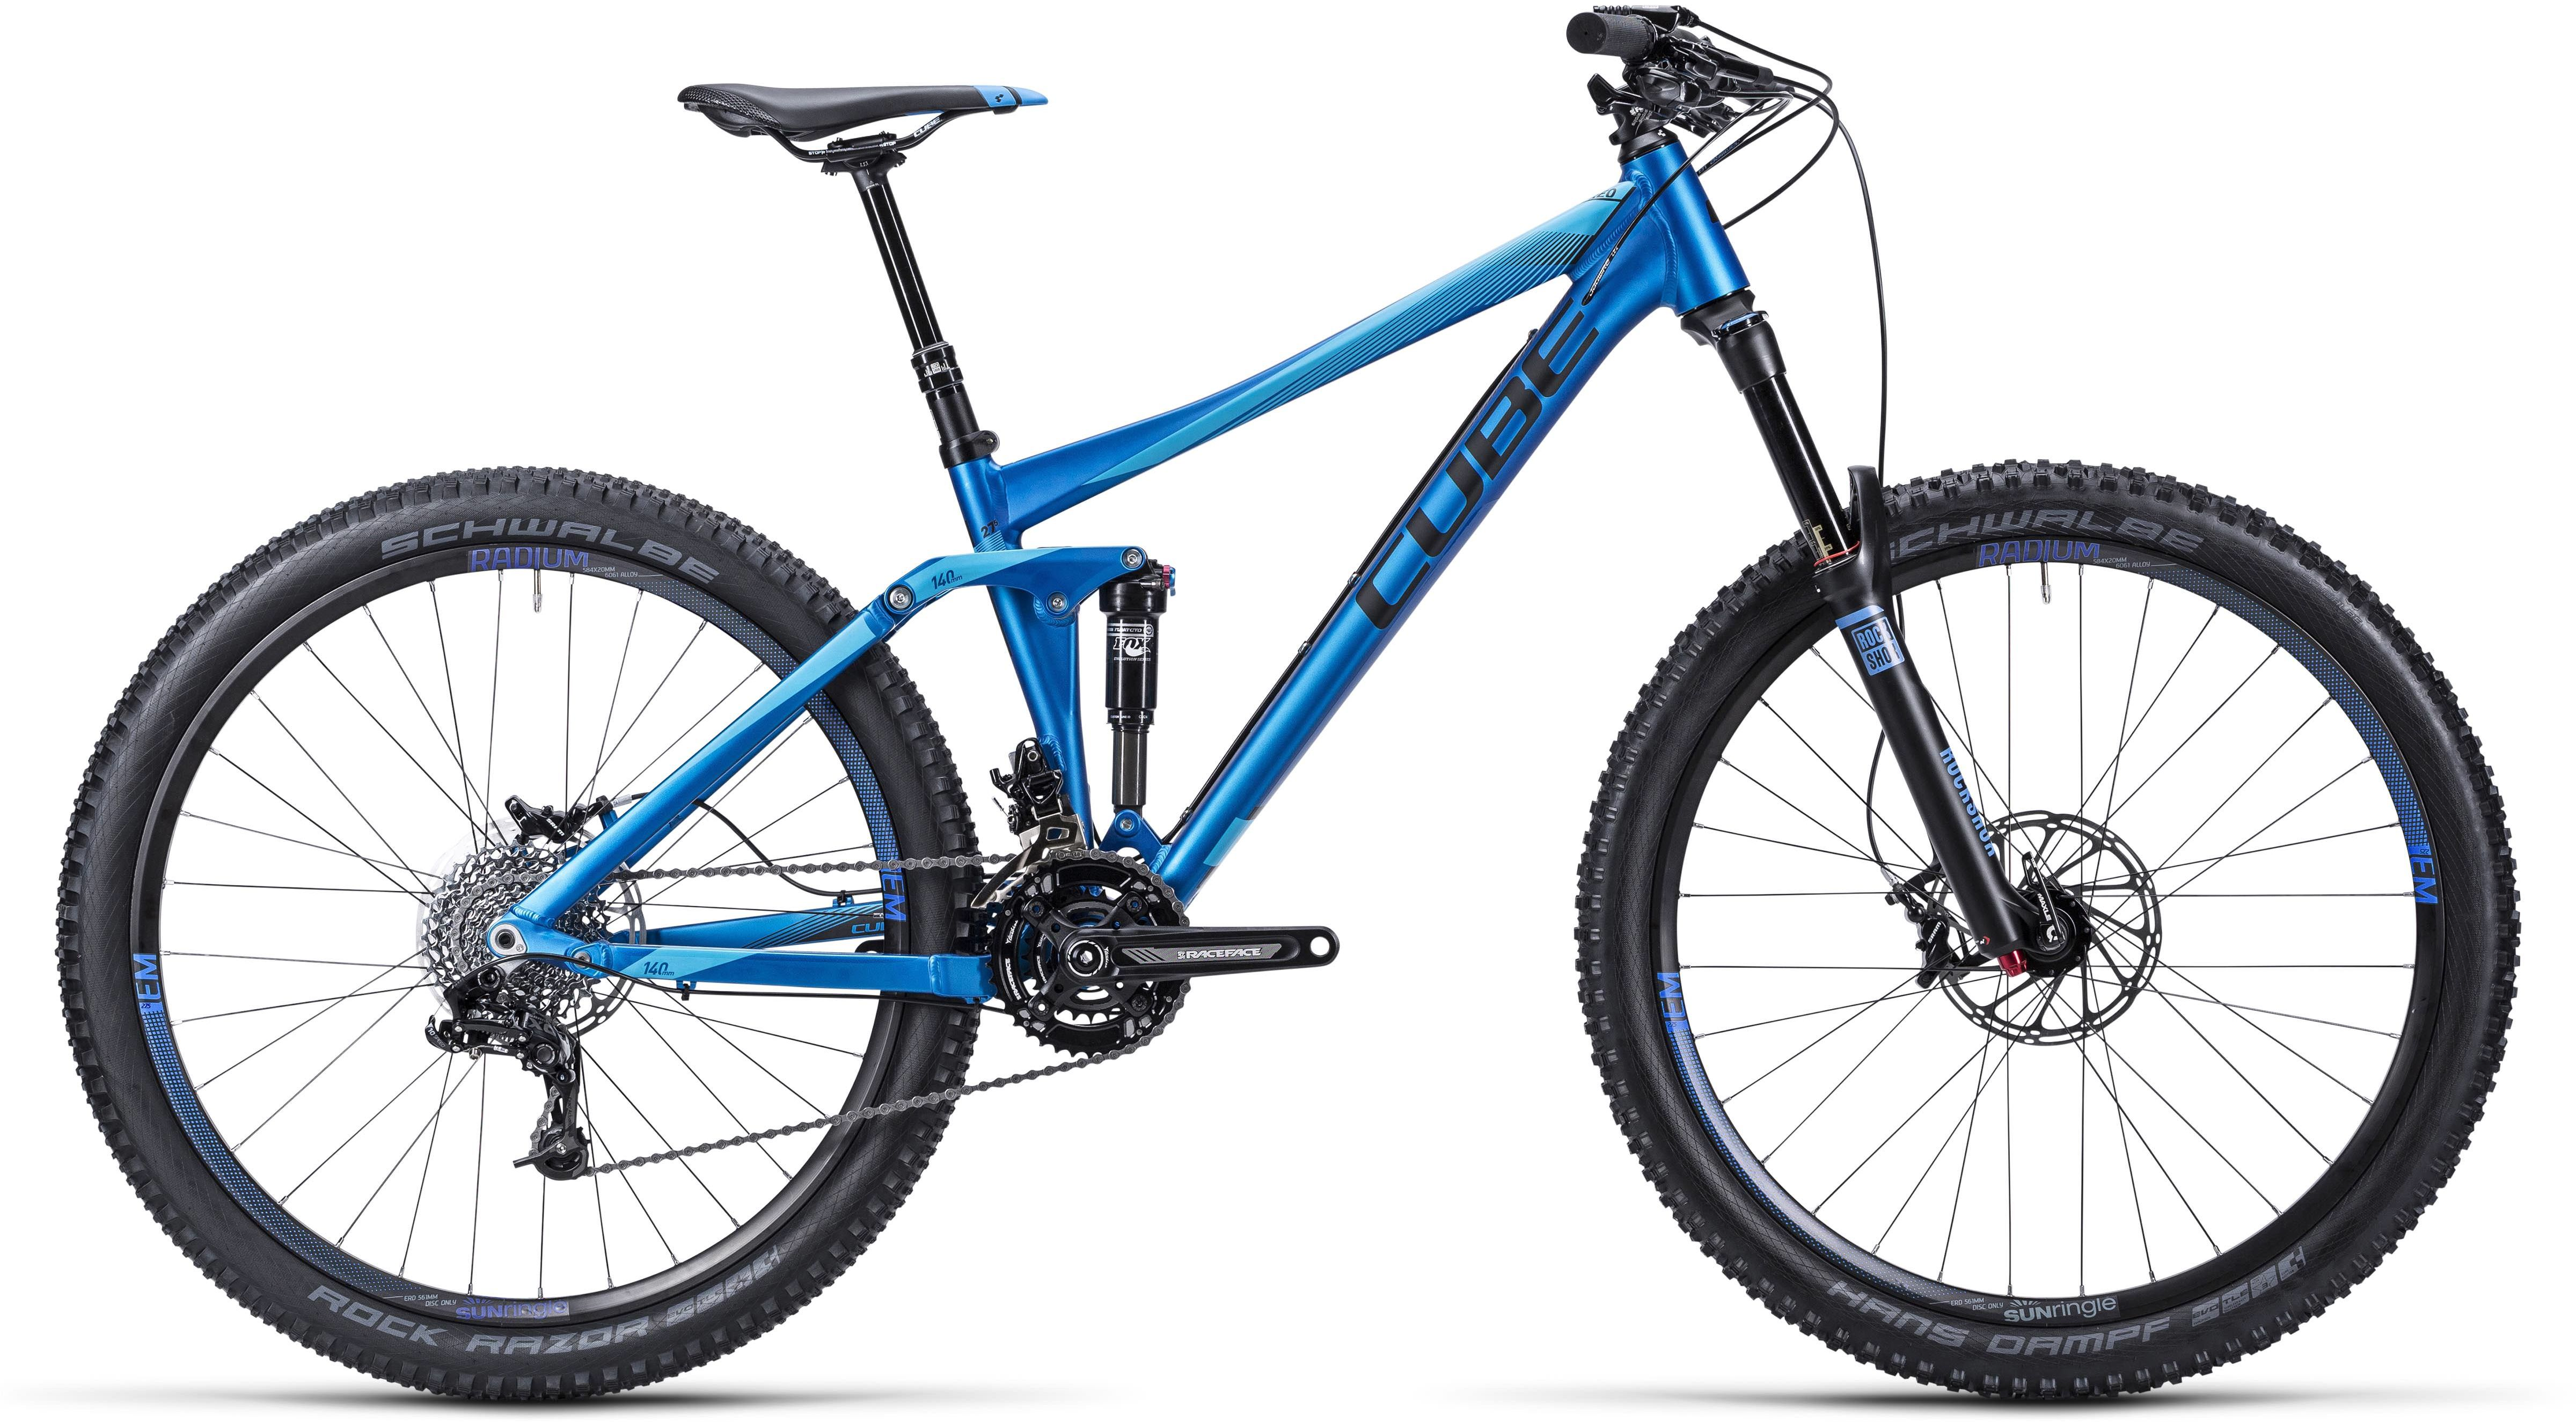 5680c555d5a Cube Stereo 140 HPA Pro 27.5 2015 review - The Bike List